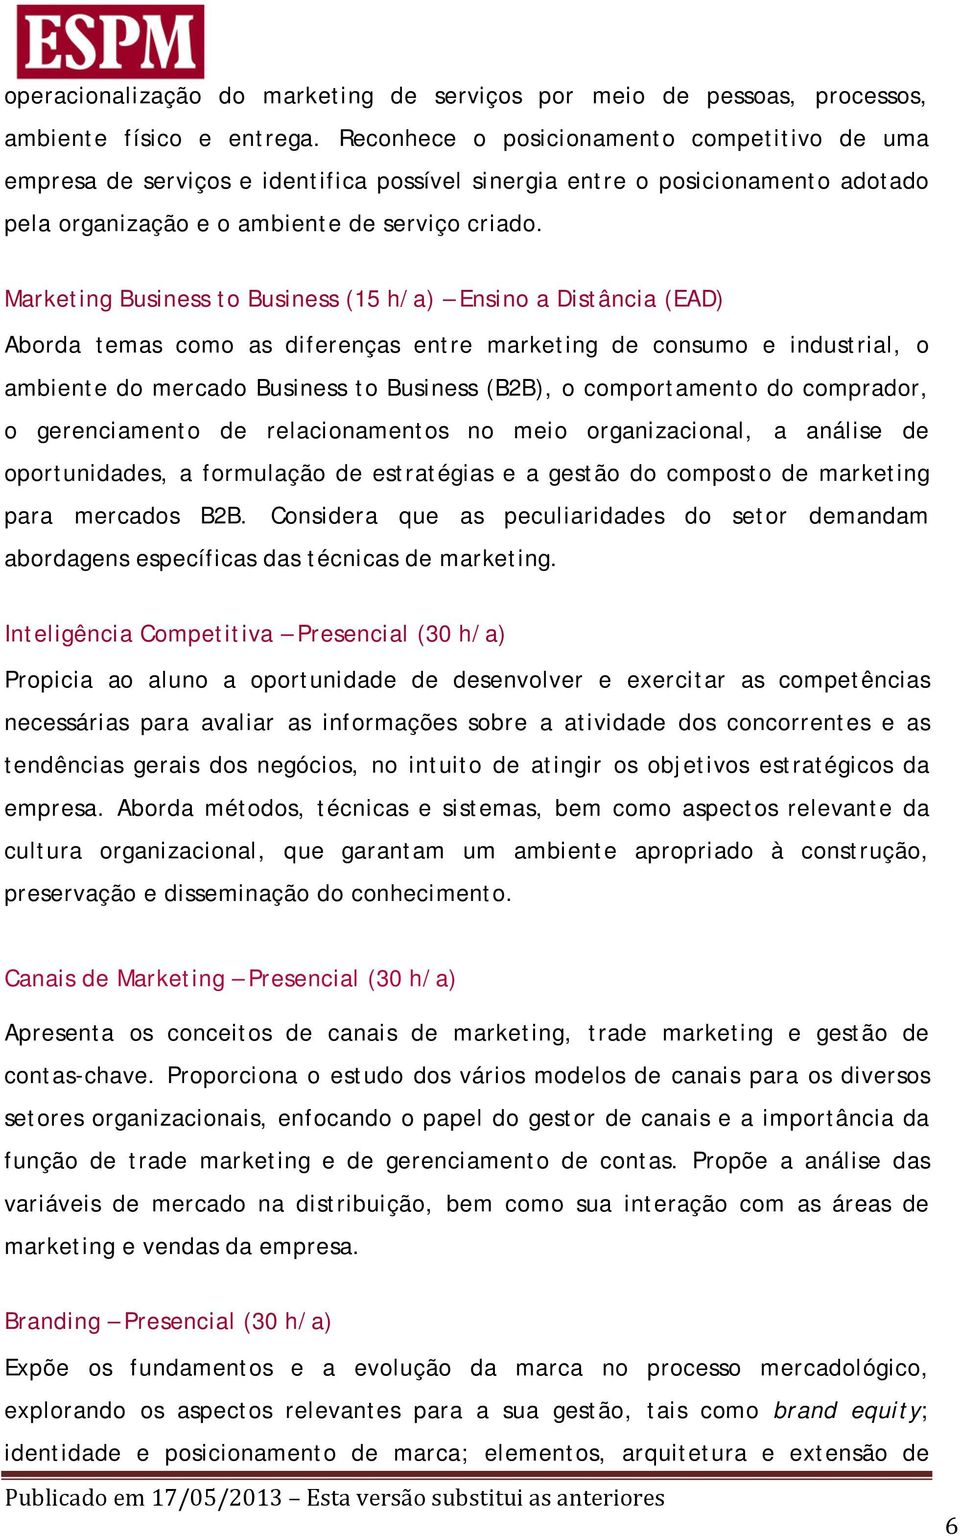 Marketing Business to Business (15 h/a) Ensino a Distância (EAD) Aborda temas como as diferenças entre marketing de consumo e industrial, o ambiente do mercado Business to Business (B2B), o